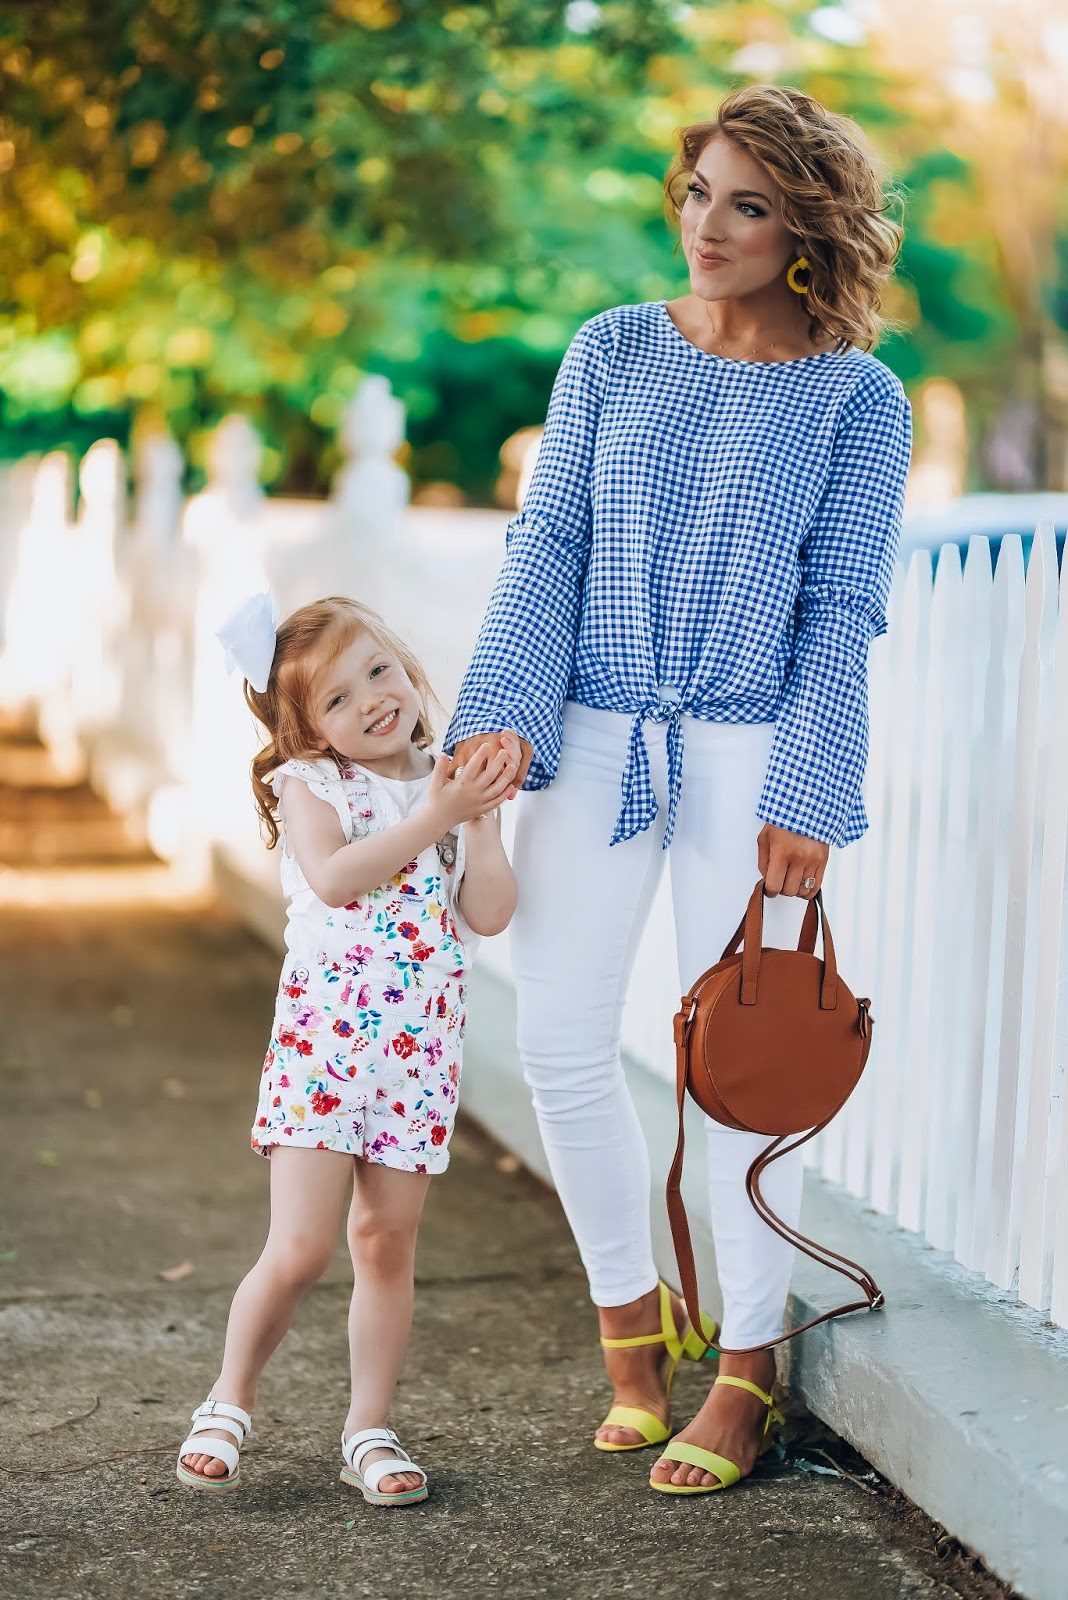 Spring Favorites with Walmart: $13 Gingham Top, $14 Circle Bag, Under $40 Yellow Sandals - Something Delightful Blog #springfashion #wedressamerica #walmartfashion